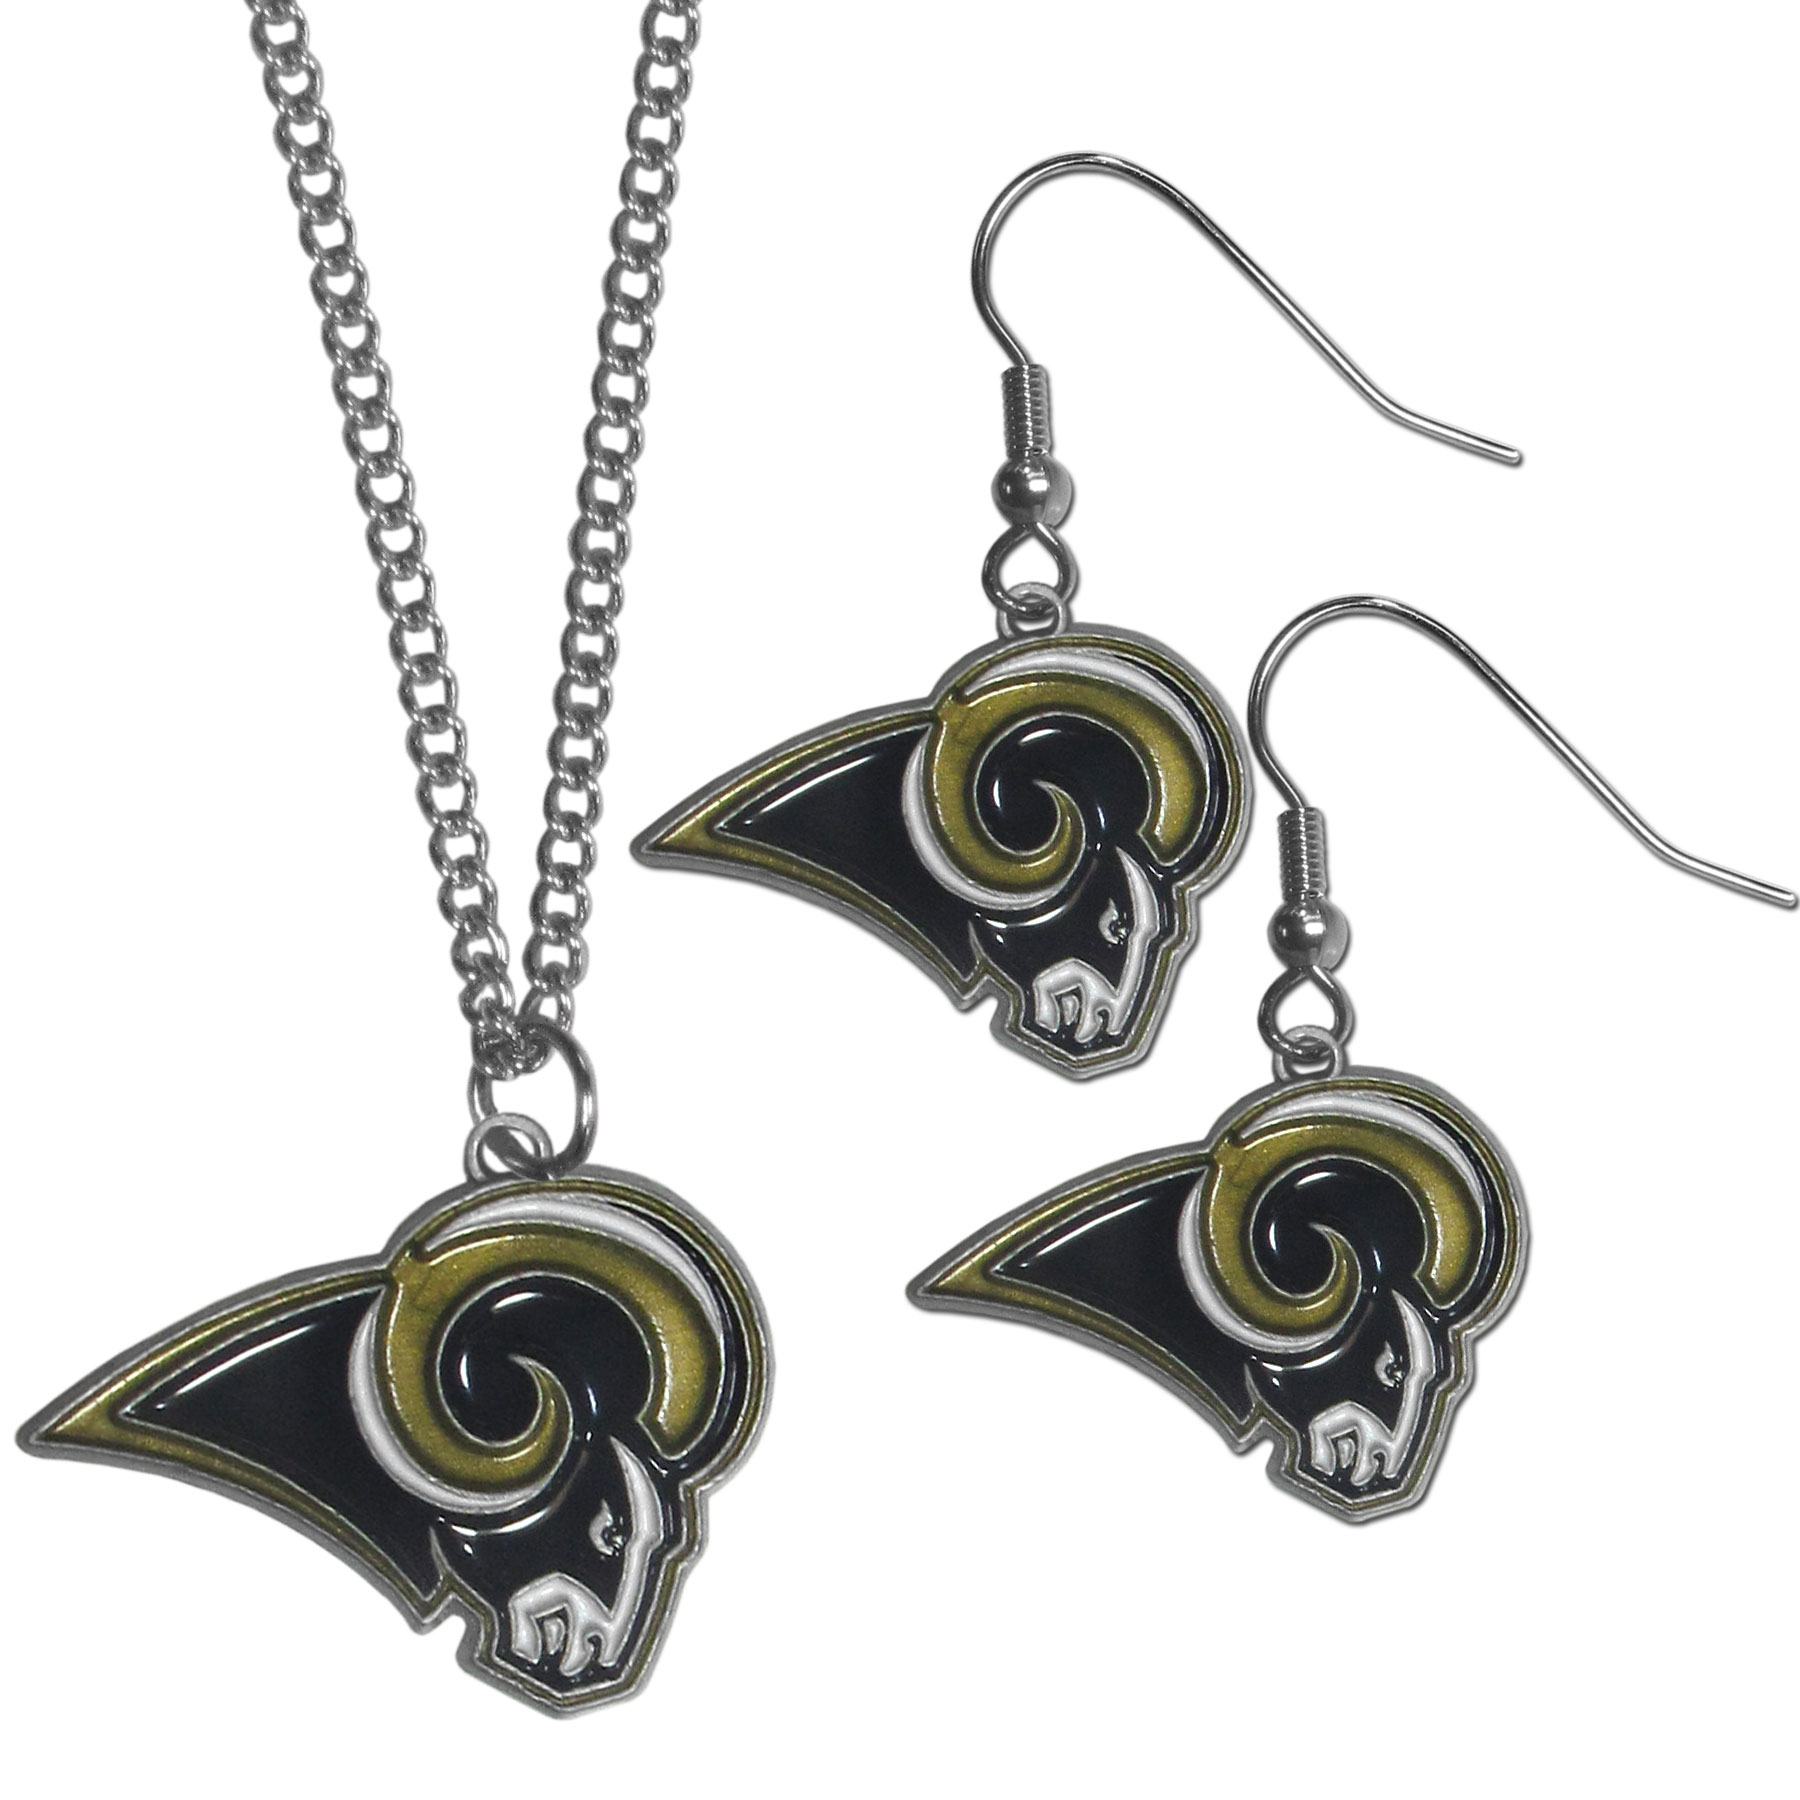 Los Angeles Rams Dangle Earrings and Chain Necklace Set - This classic jewelry set contains are most popular Los Angeles Rams dangle earrings and 22 inch chain necklace. The trendy, dangle earrings are lightweight and feature a fully cast metal team charm with enameled team colors. The matching necklace completes this fashion forward combo and is a spirited set that is perfect for game day but nice enough for everyday.